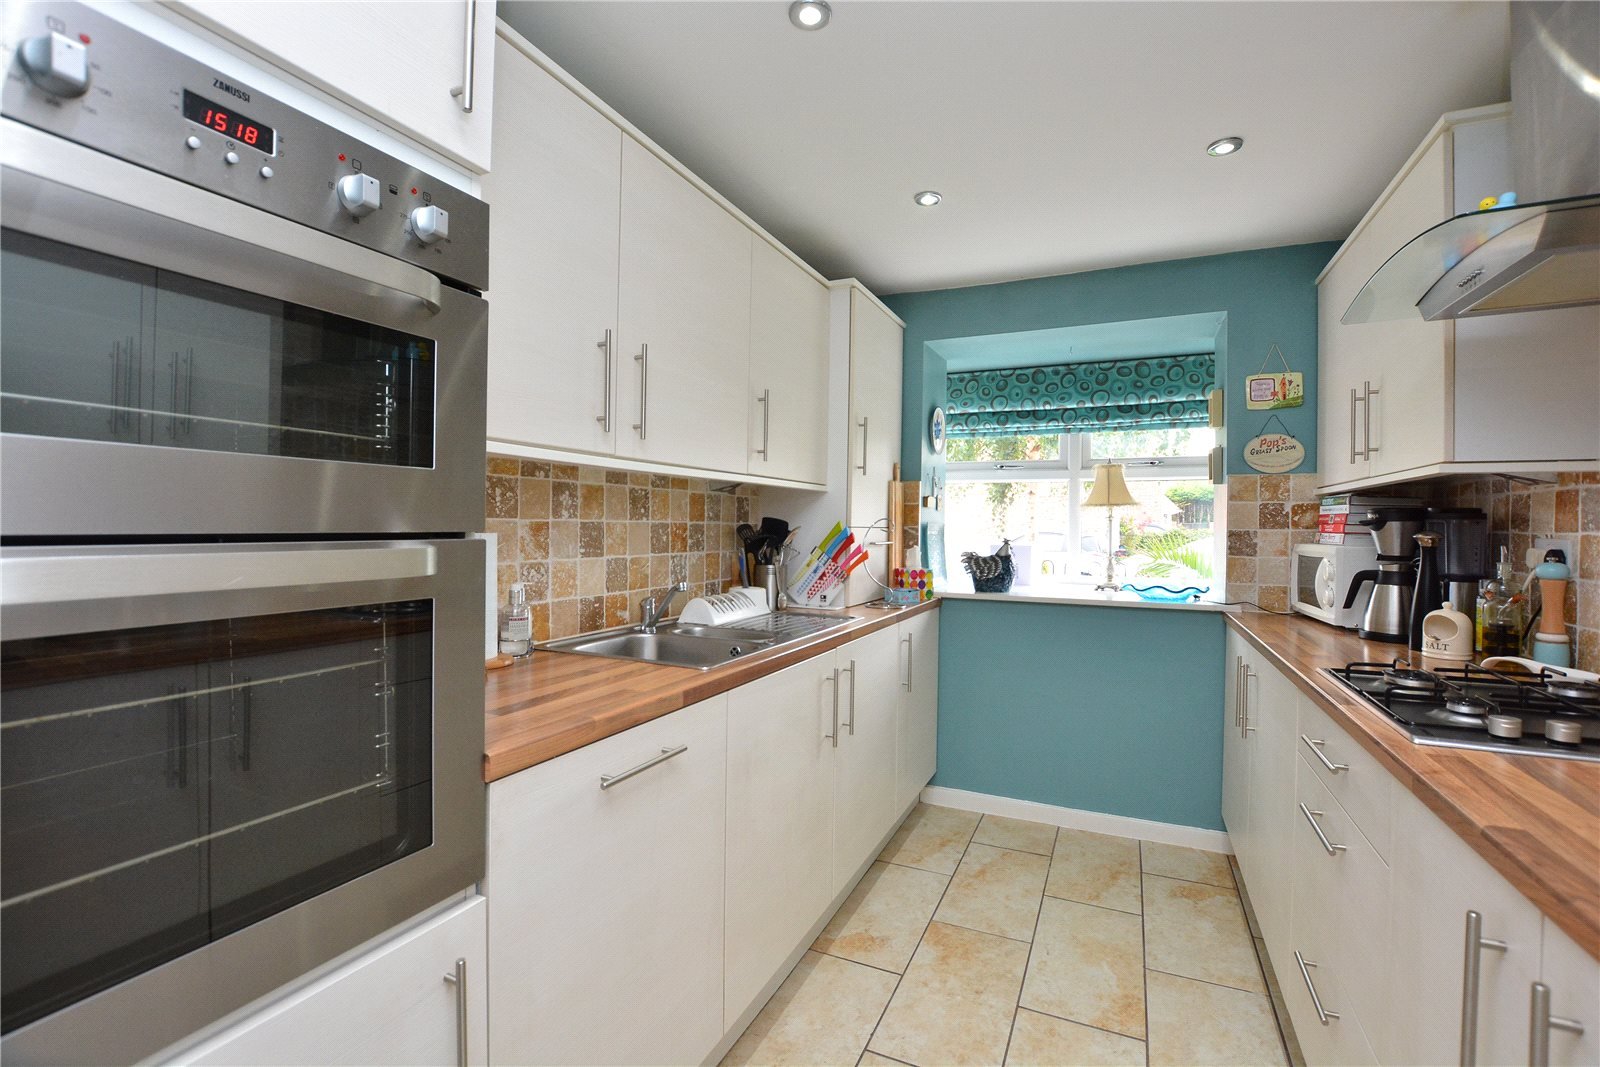 property for sale in Wetherby, kitchen